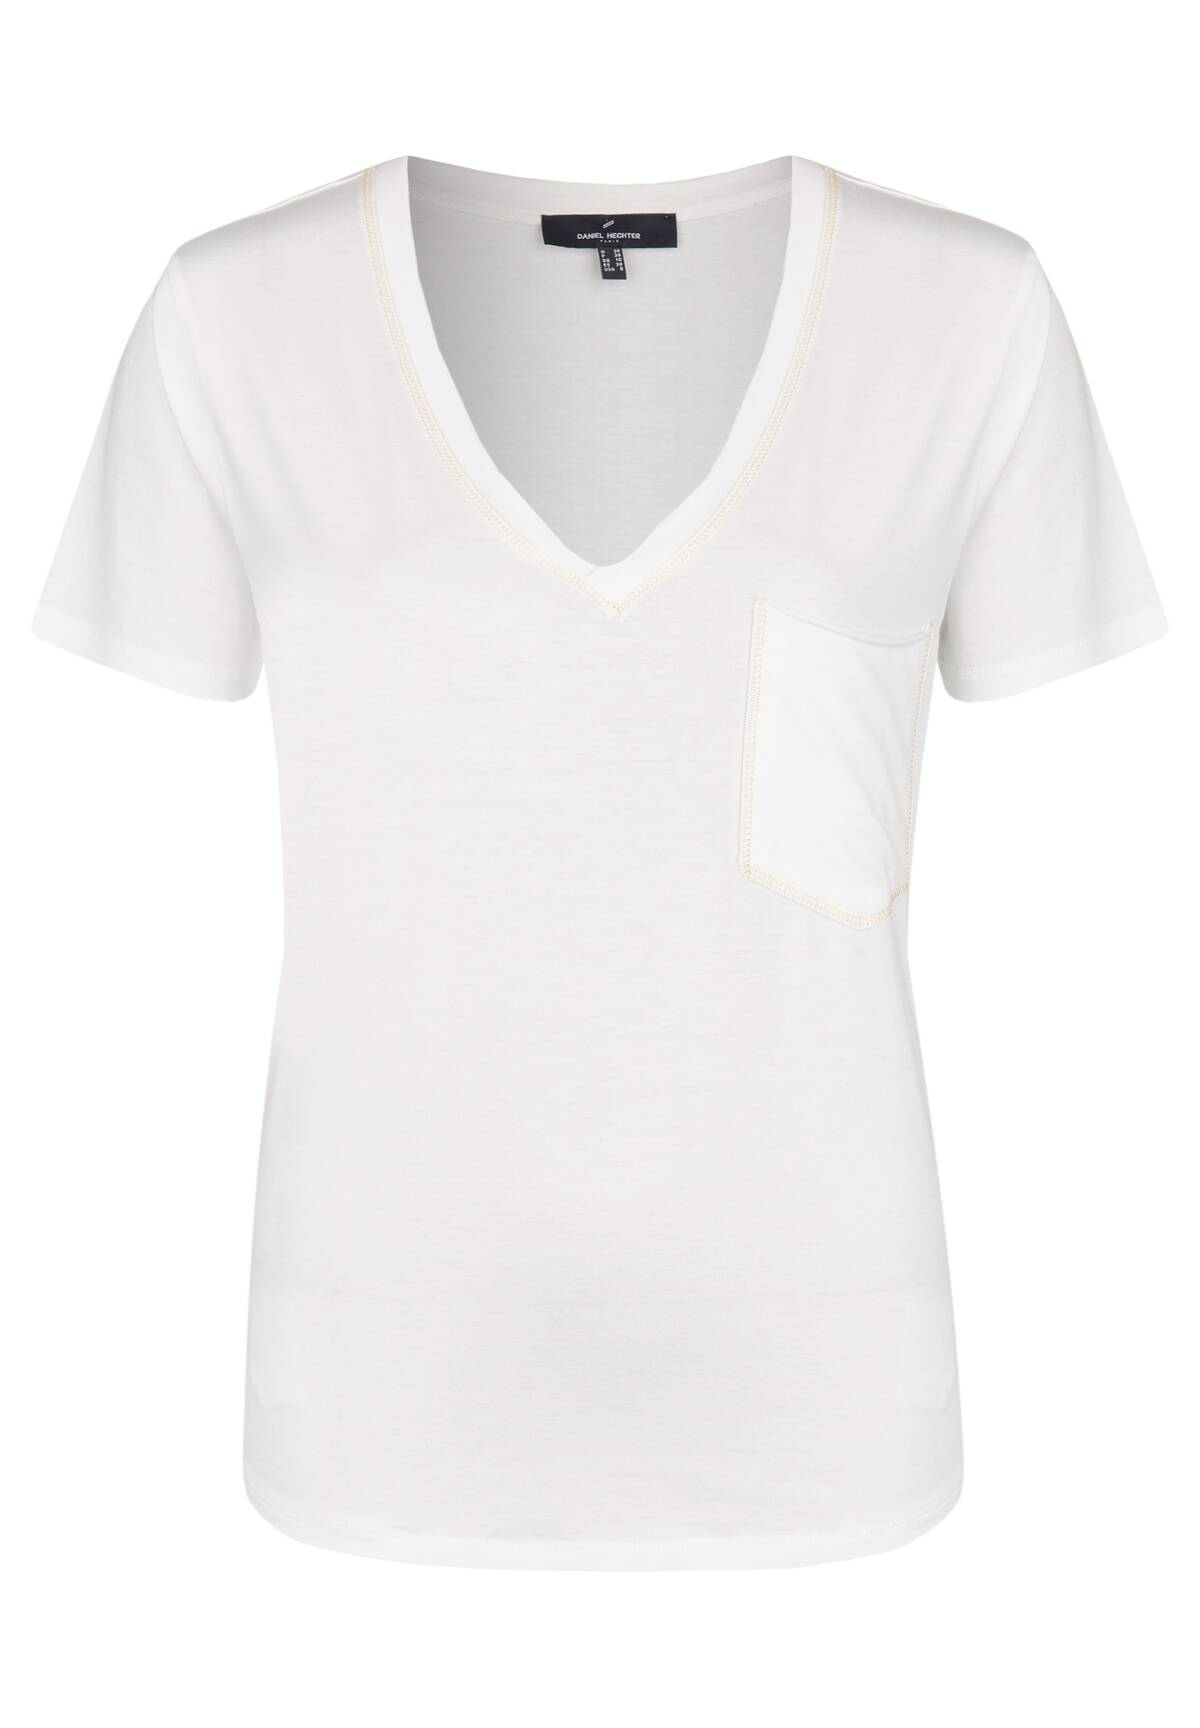 Casual T-Shirt / V-neck T-Shirt